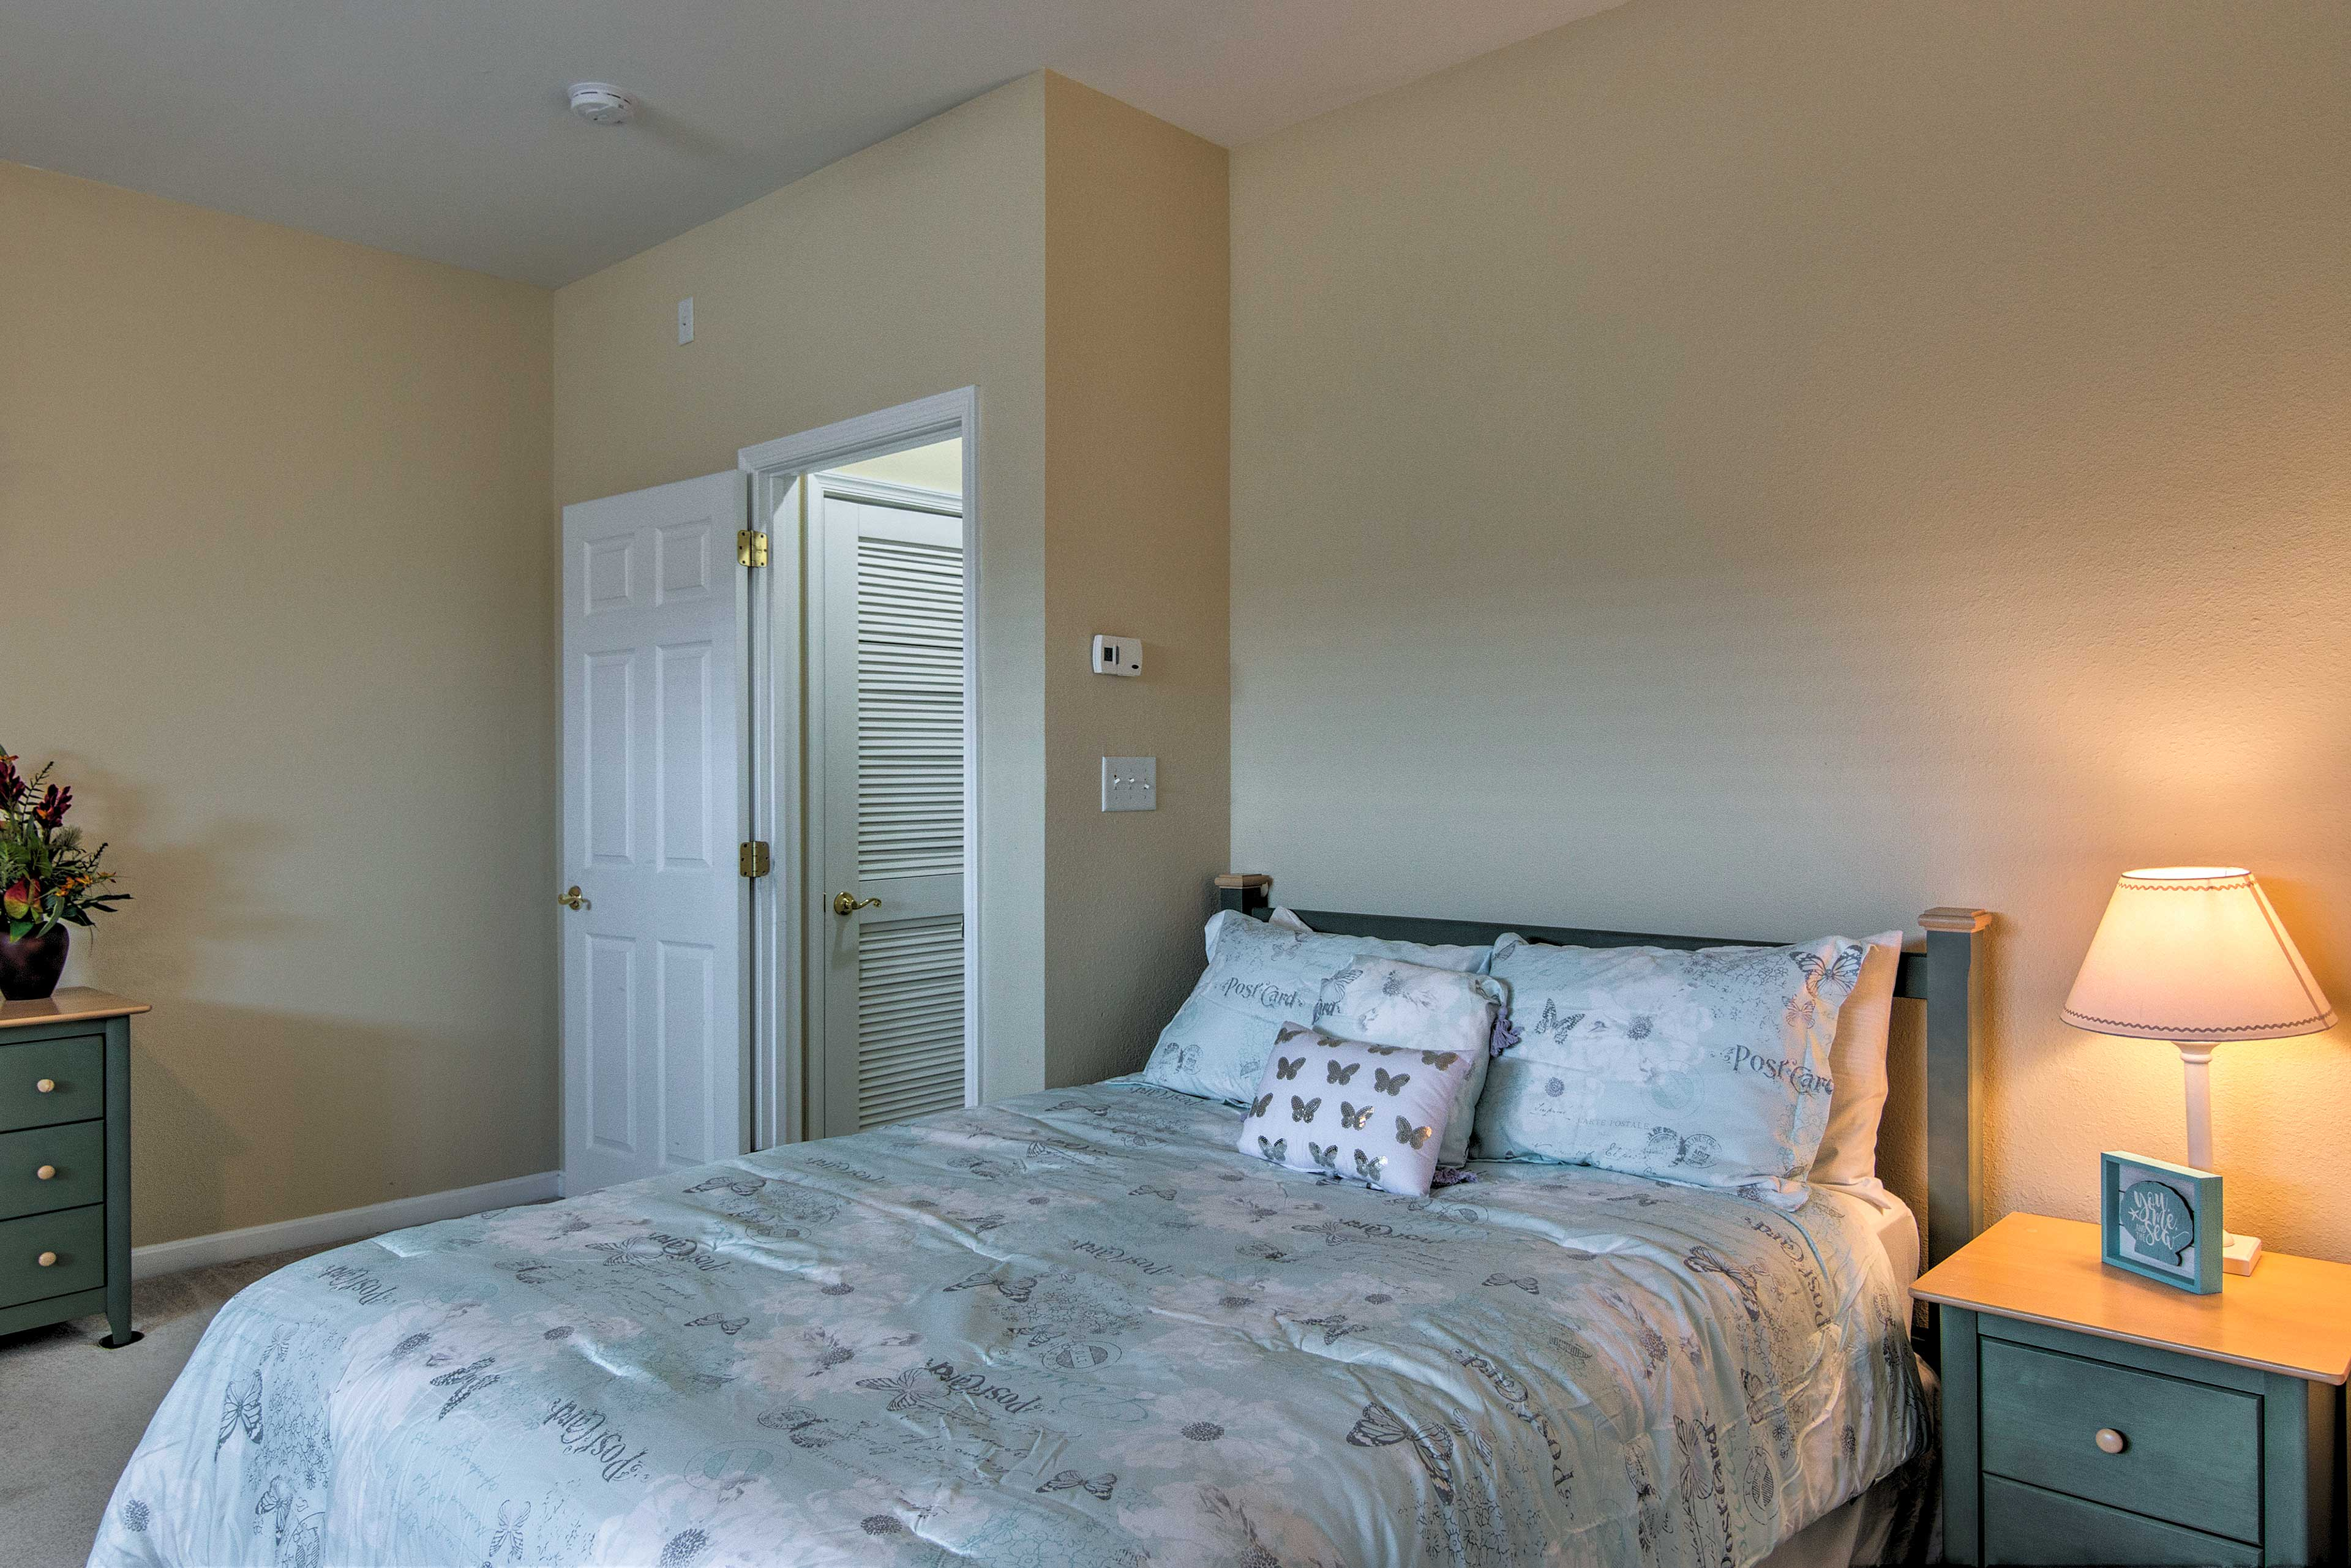 Beachy decor and soft bedding complete the tranquil sleeping setting.